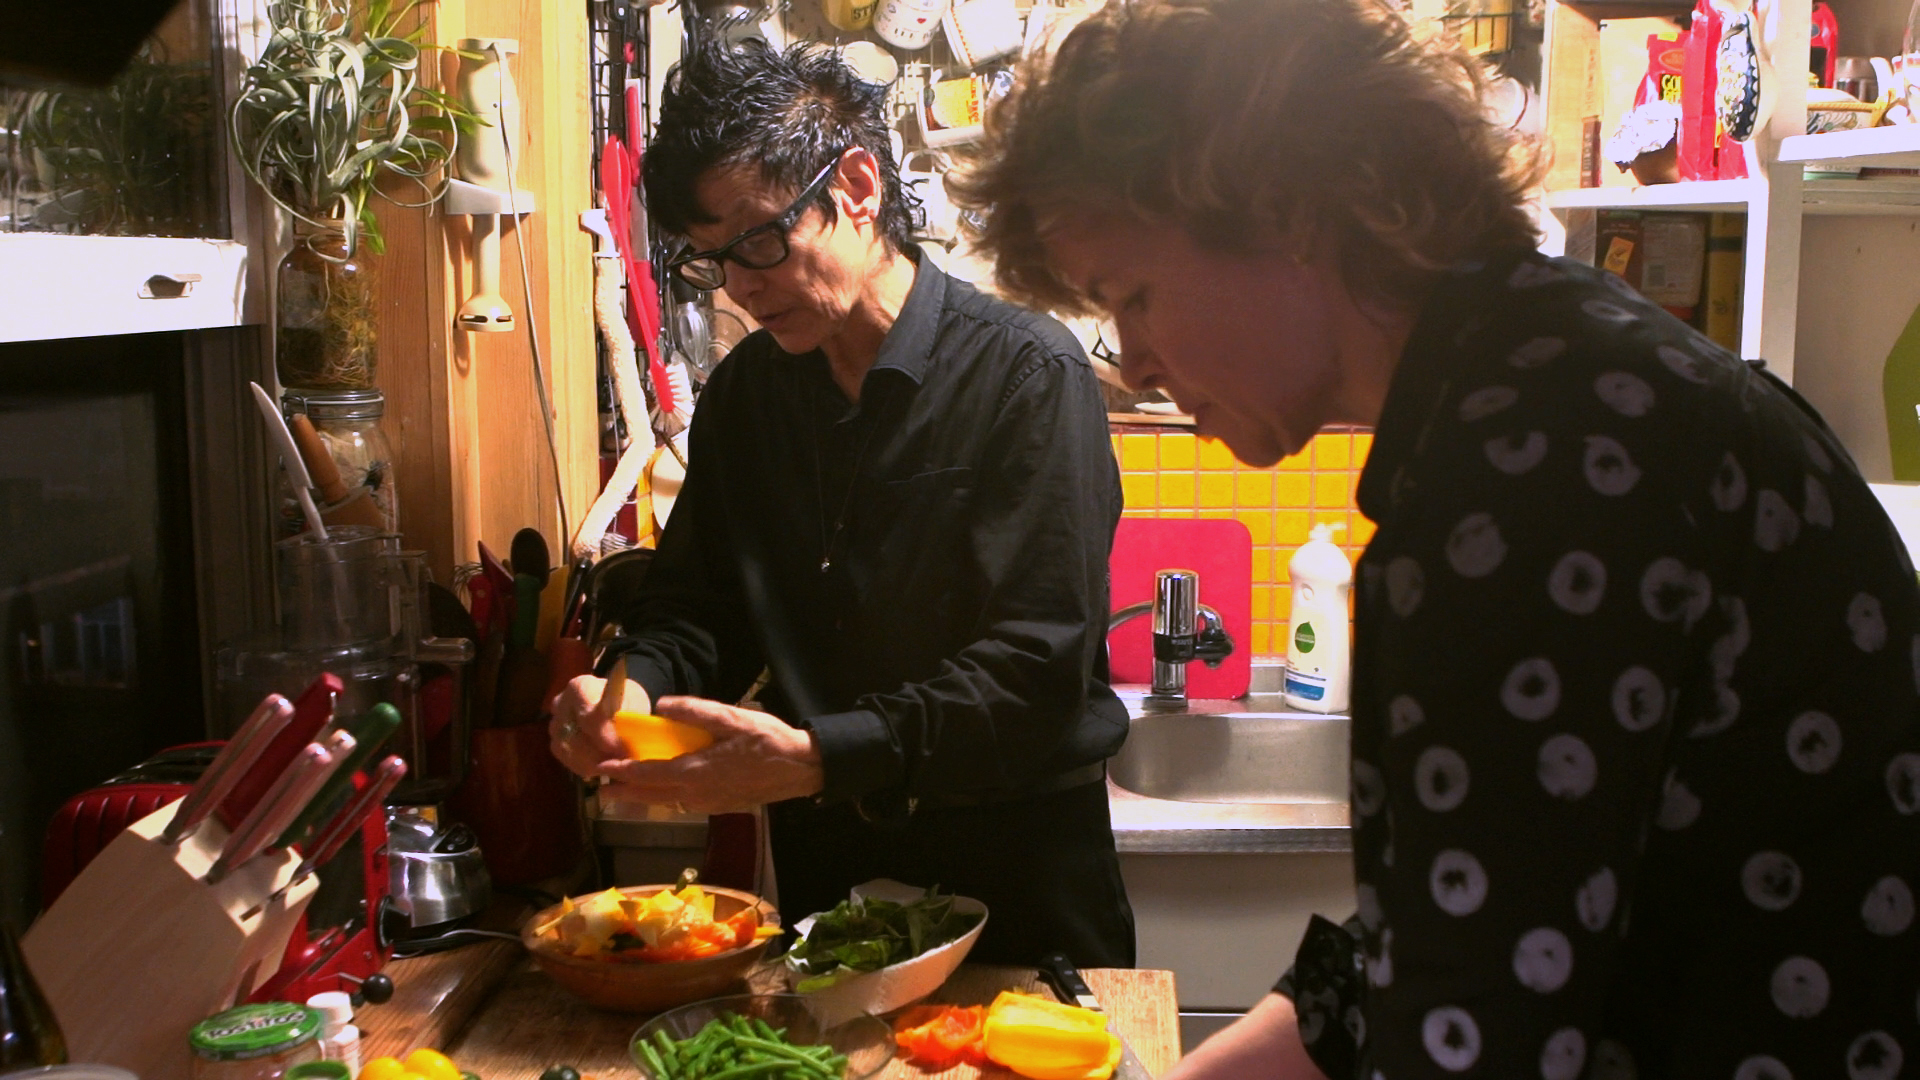 Elizabeth Streb and her partner Laura cooking in their Soho Loft.